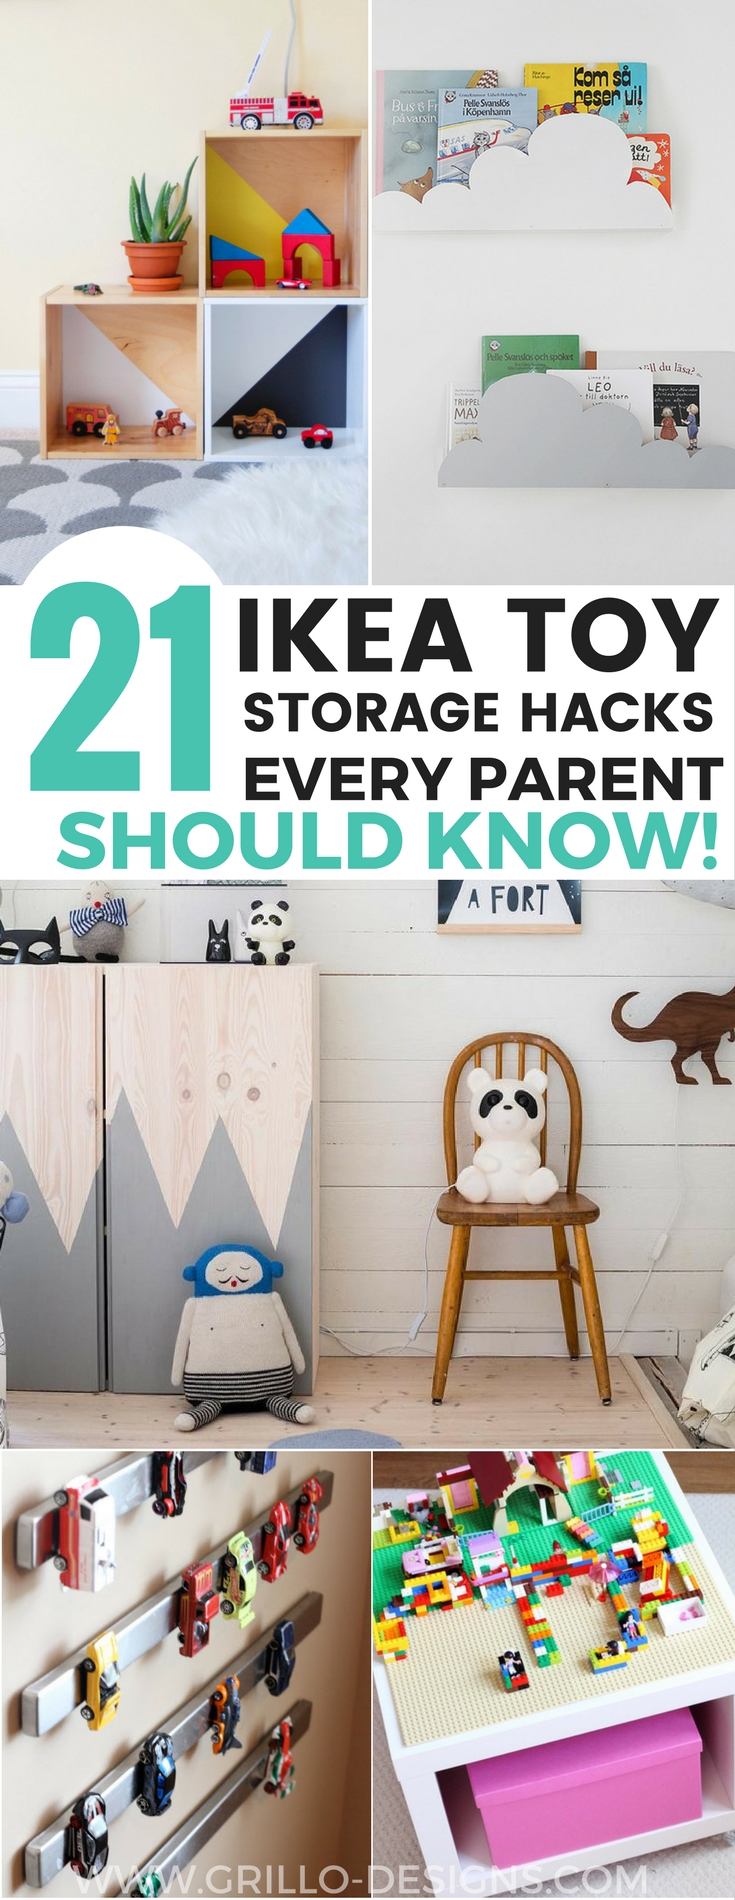 21 ikea toy storage hacks every parent should know for Room design hacks